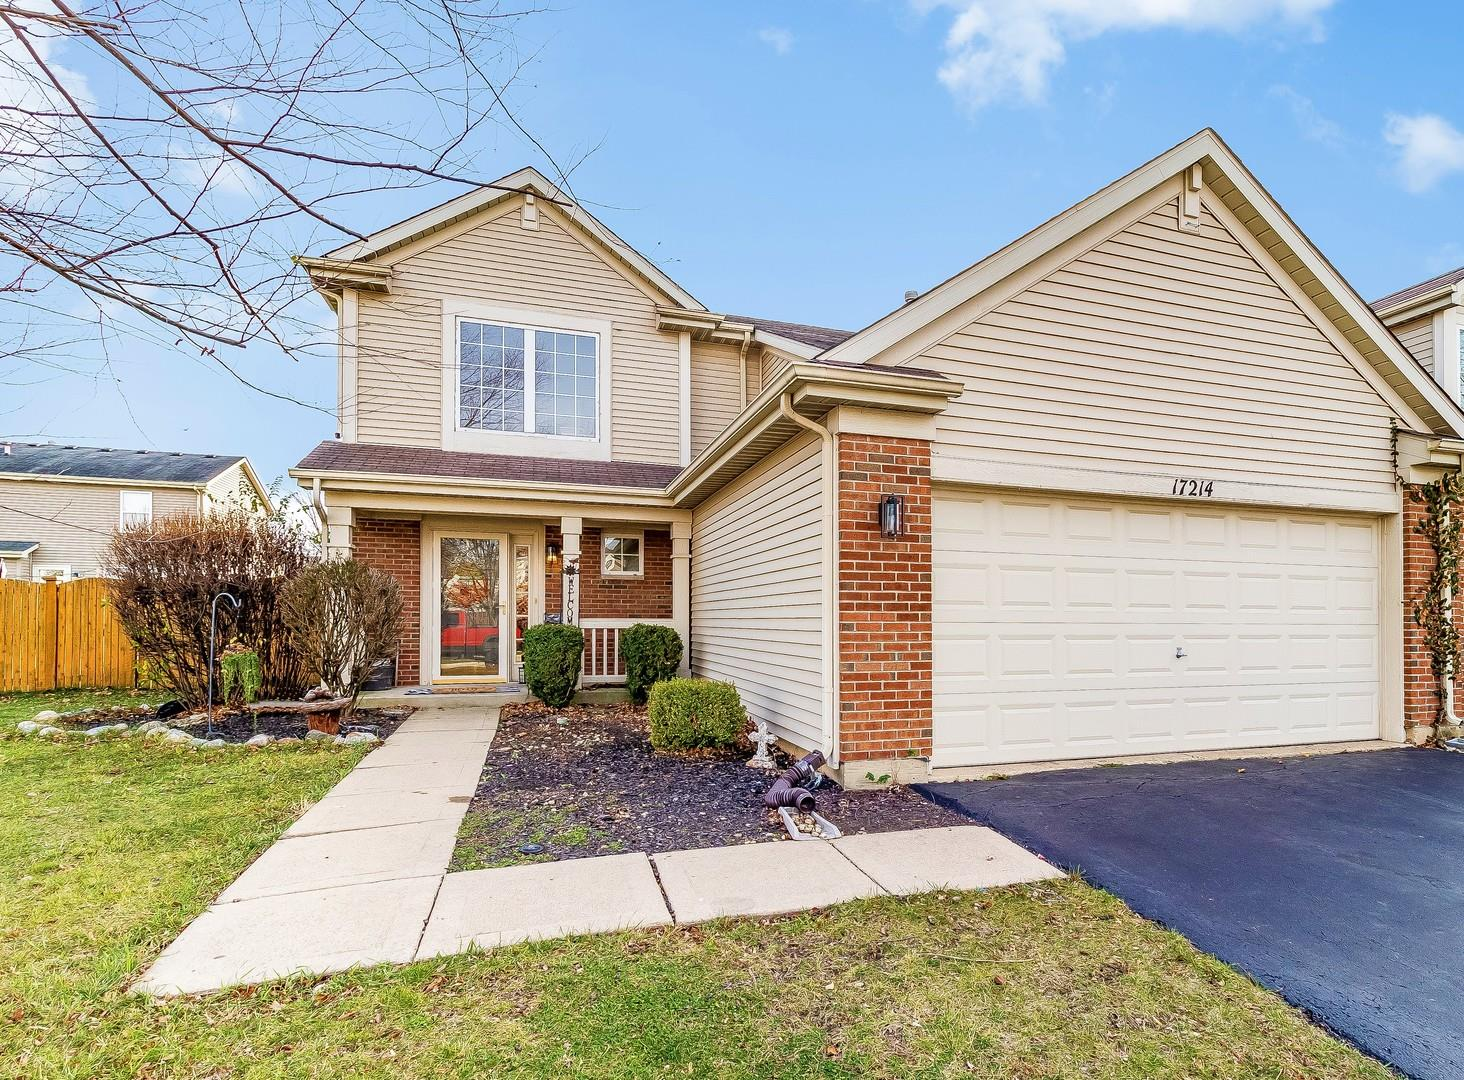 17214 DUNDEE Drive, Crest Hill, IL 60403 - #: 10939945